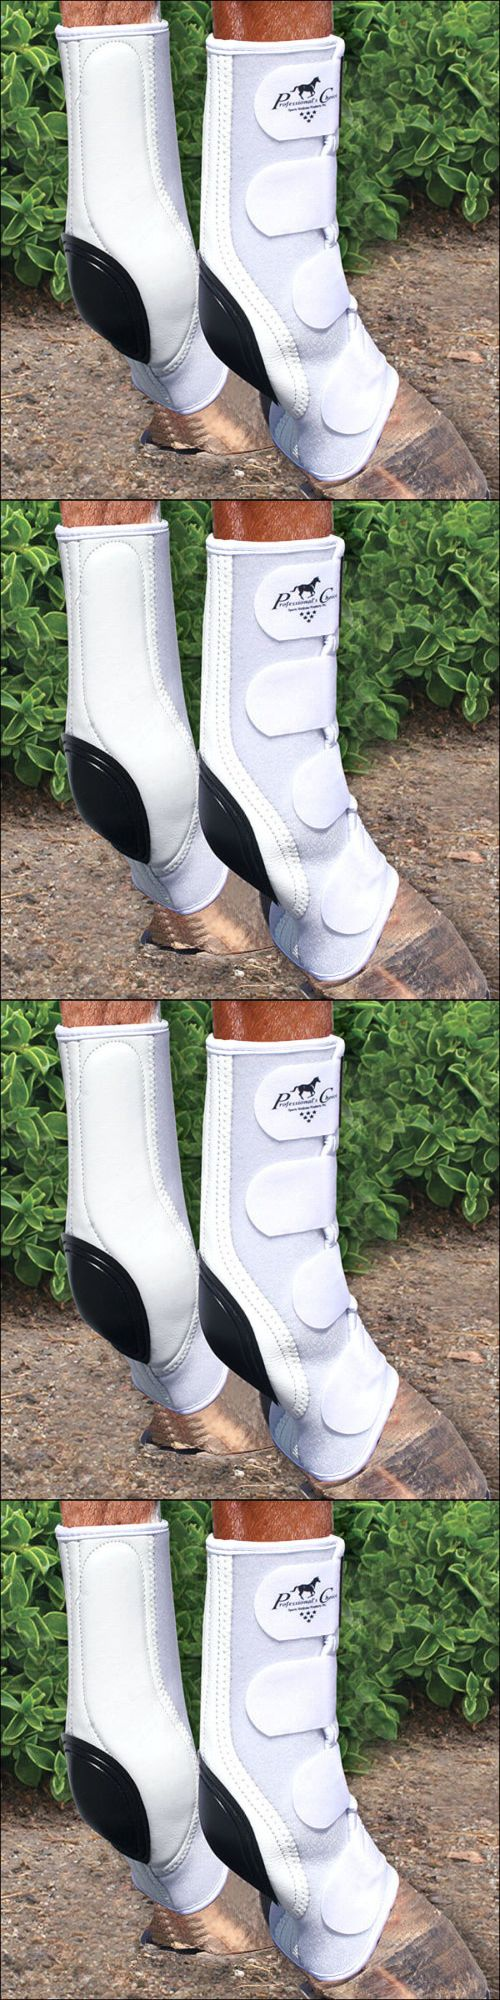 Horse Boots 85260: Professional Choice Tack Standard Ventech Slide Tec Skid Horse Leg Boots White BUY IT NOW ONLY: $84.95